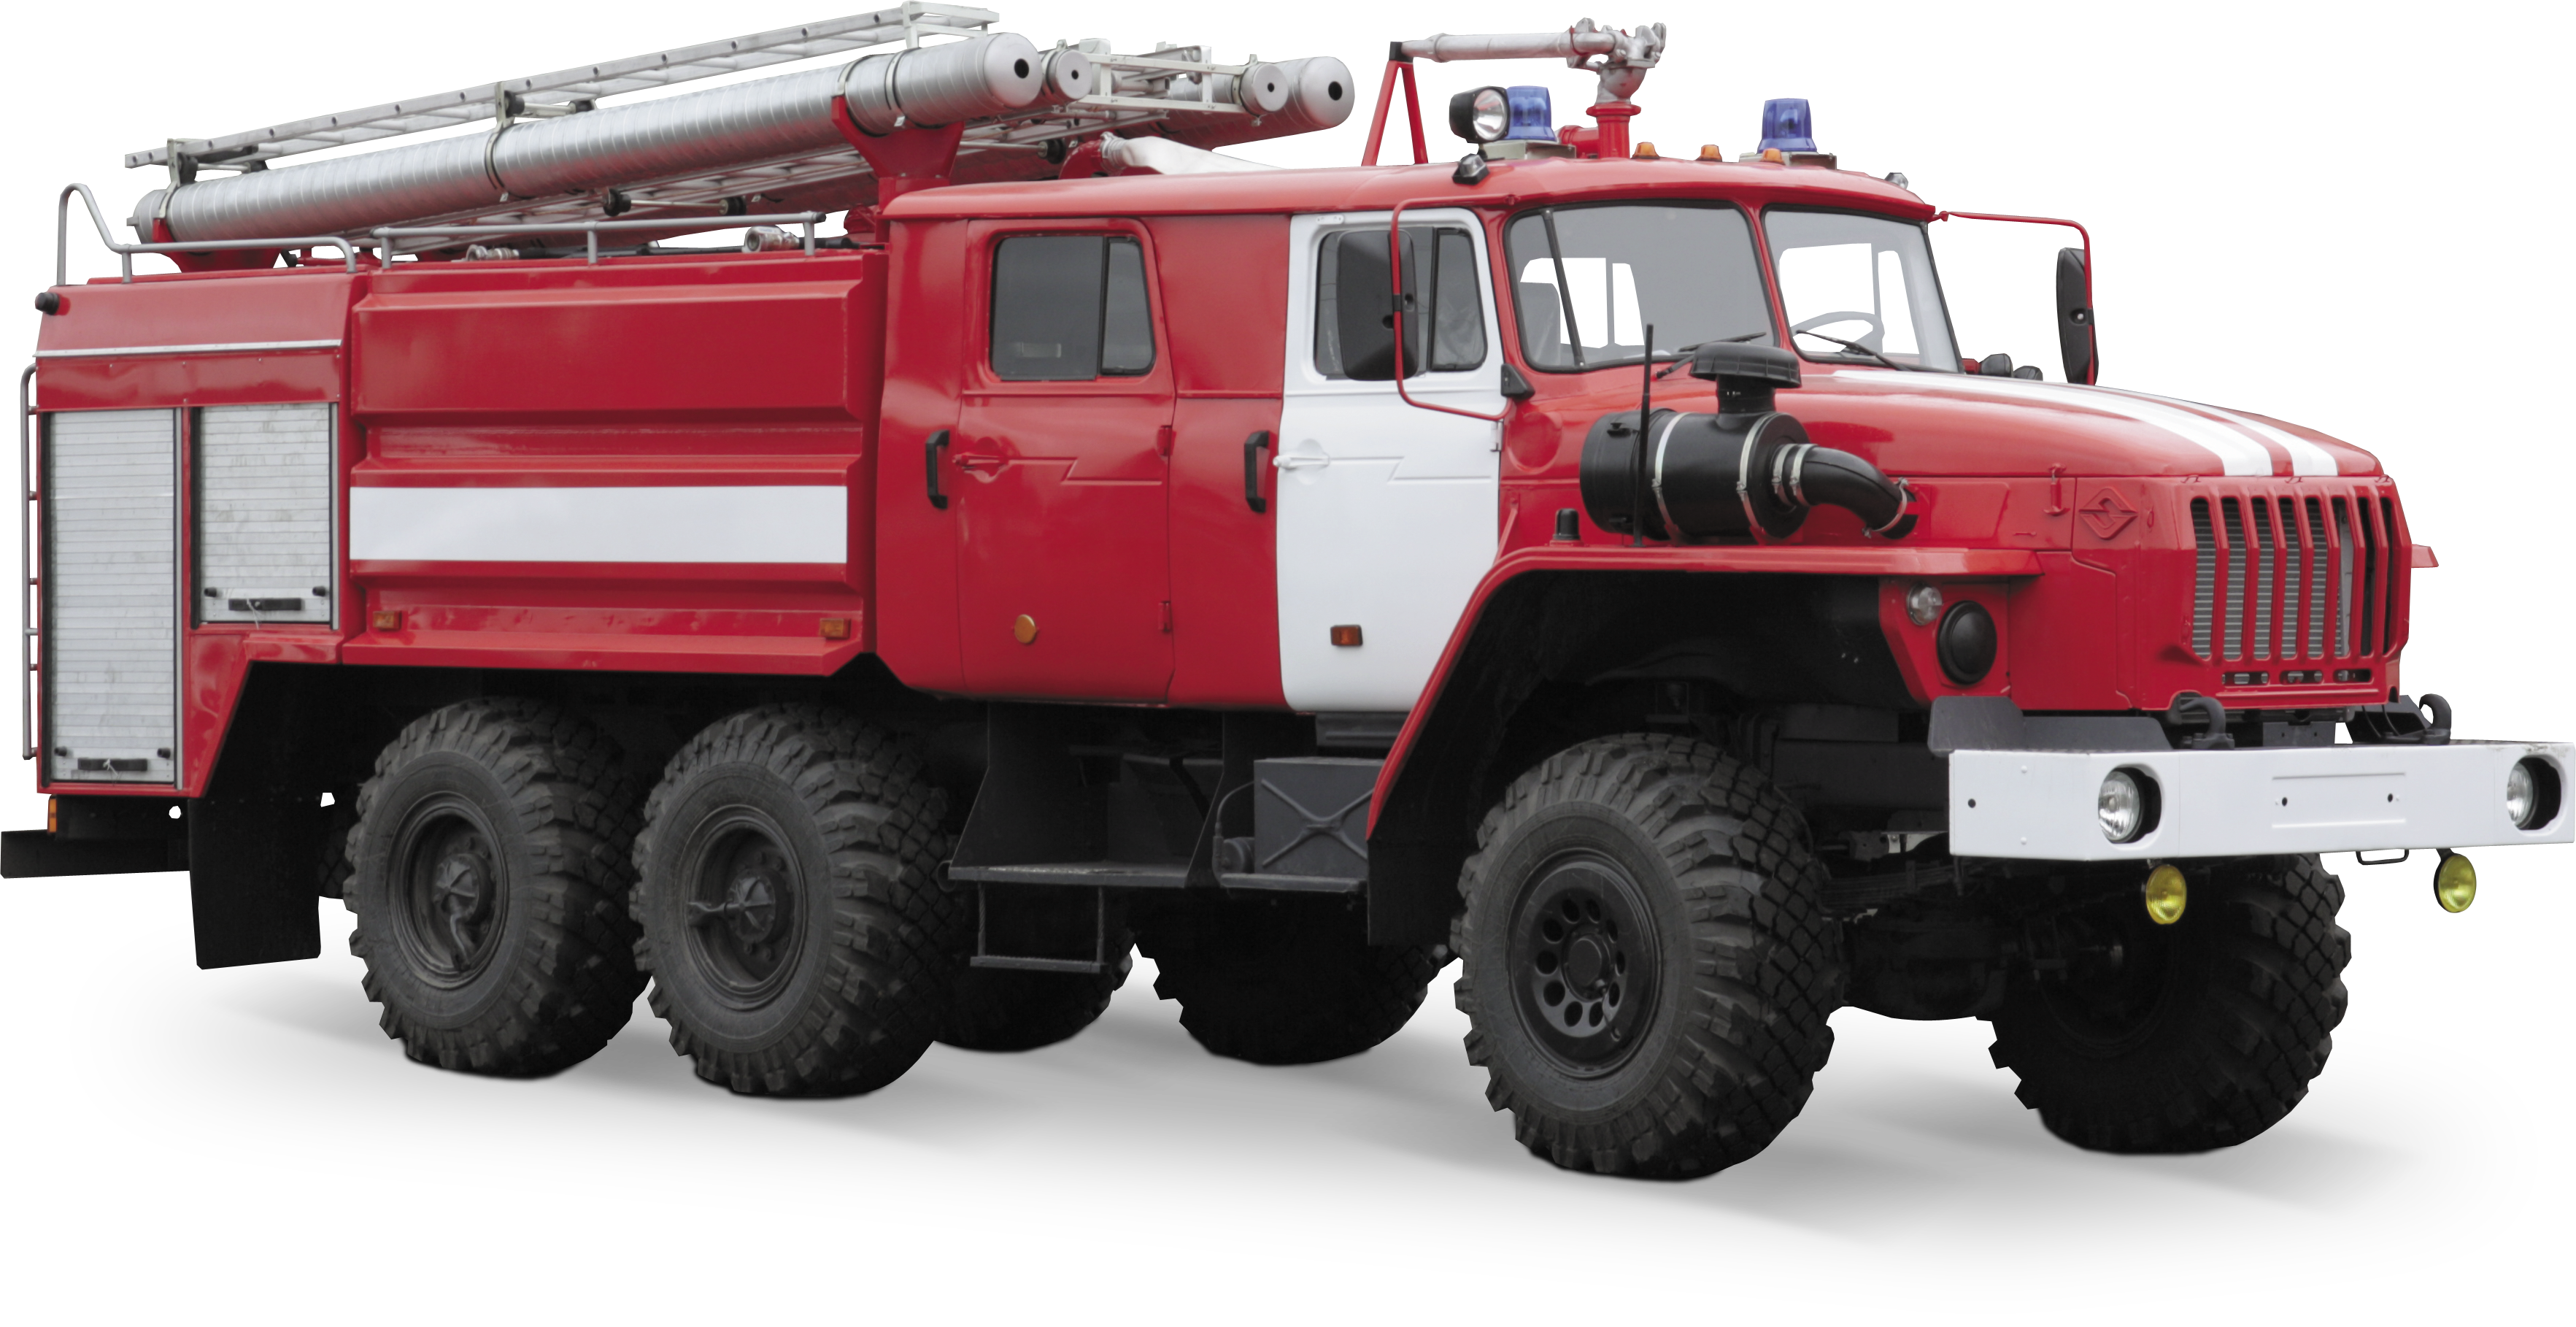 Fire Truck PNG Image